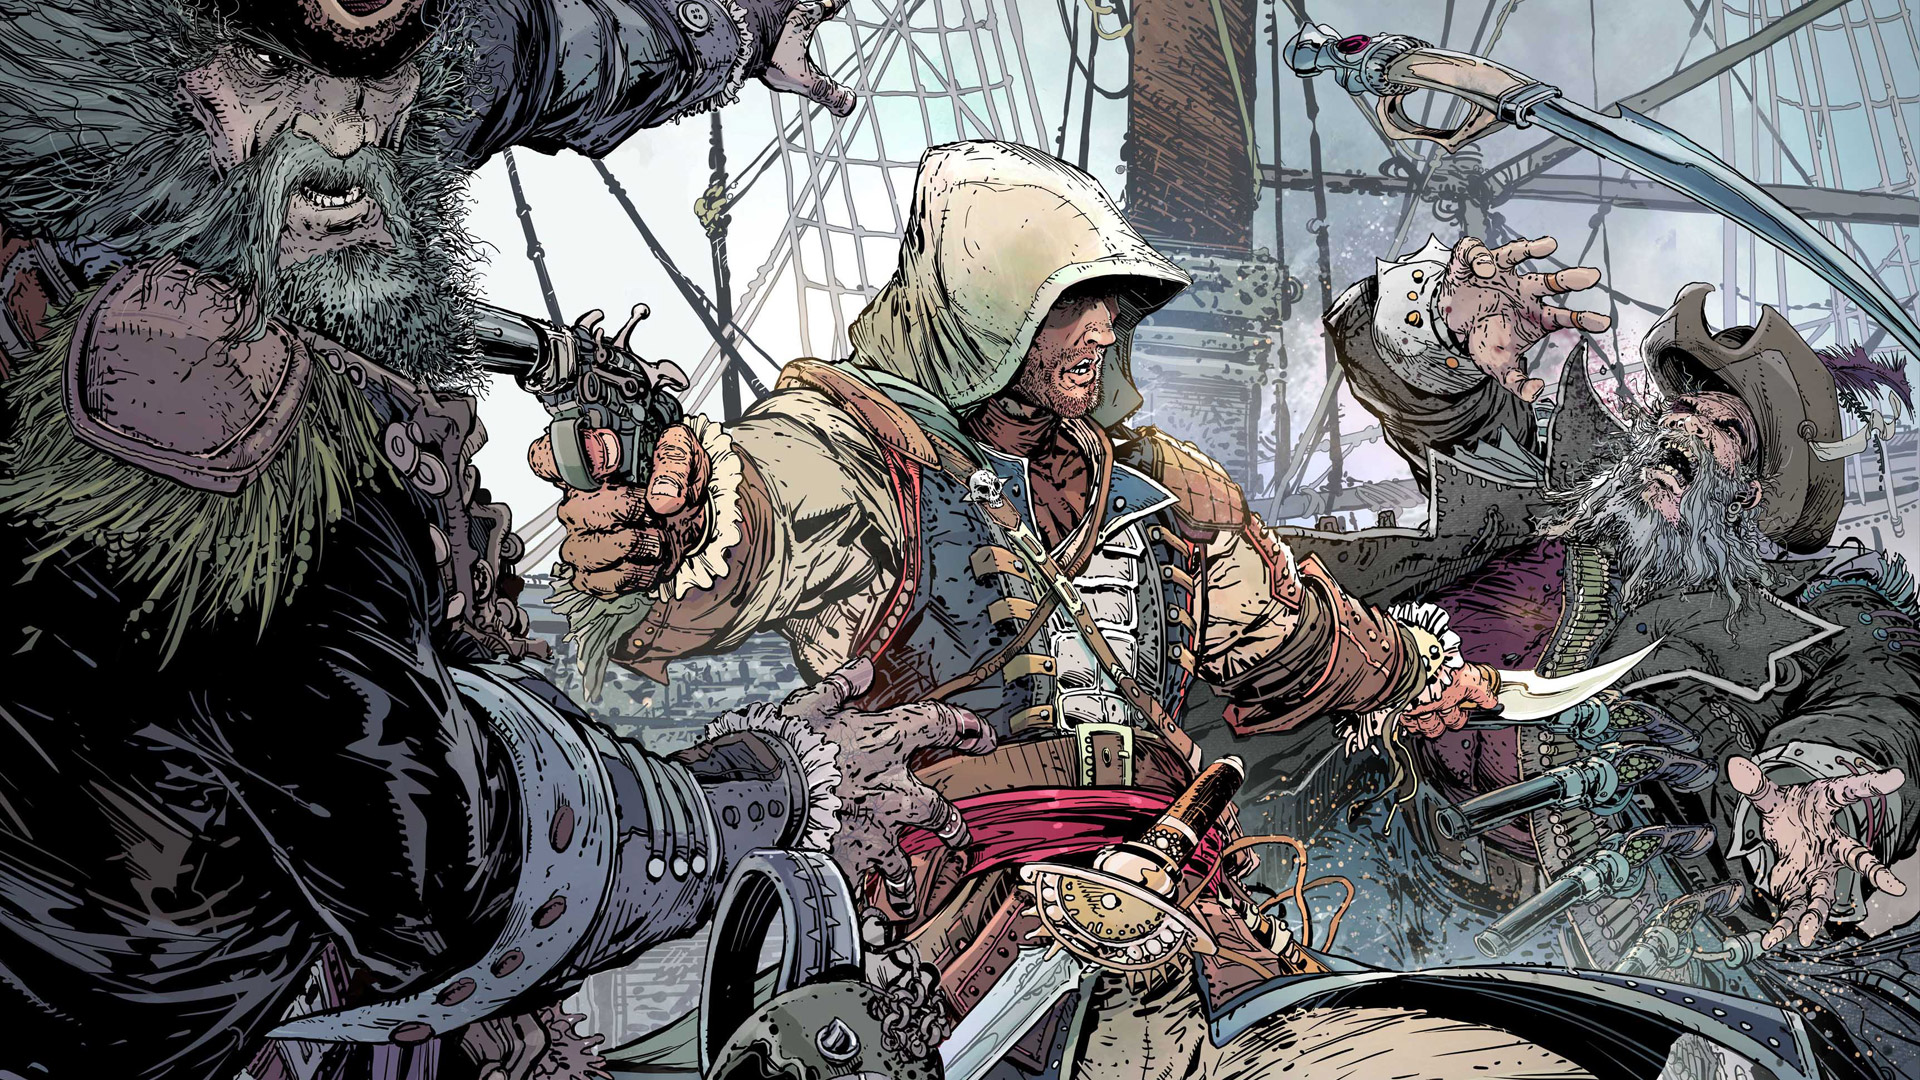 Assasin's Creed 4 Black Flag Cartoon Wallpaper